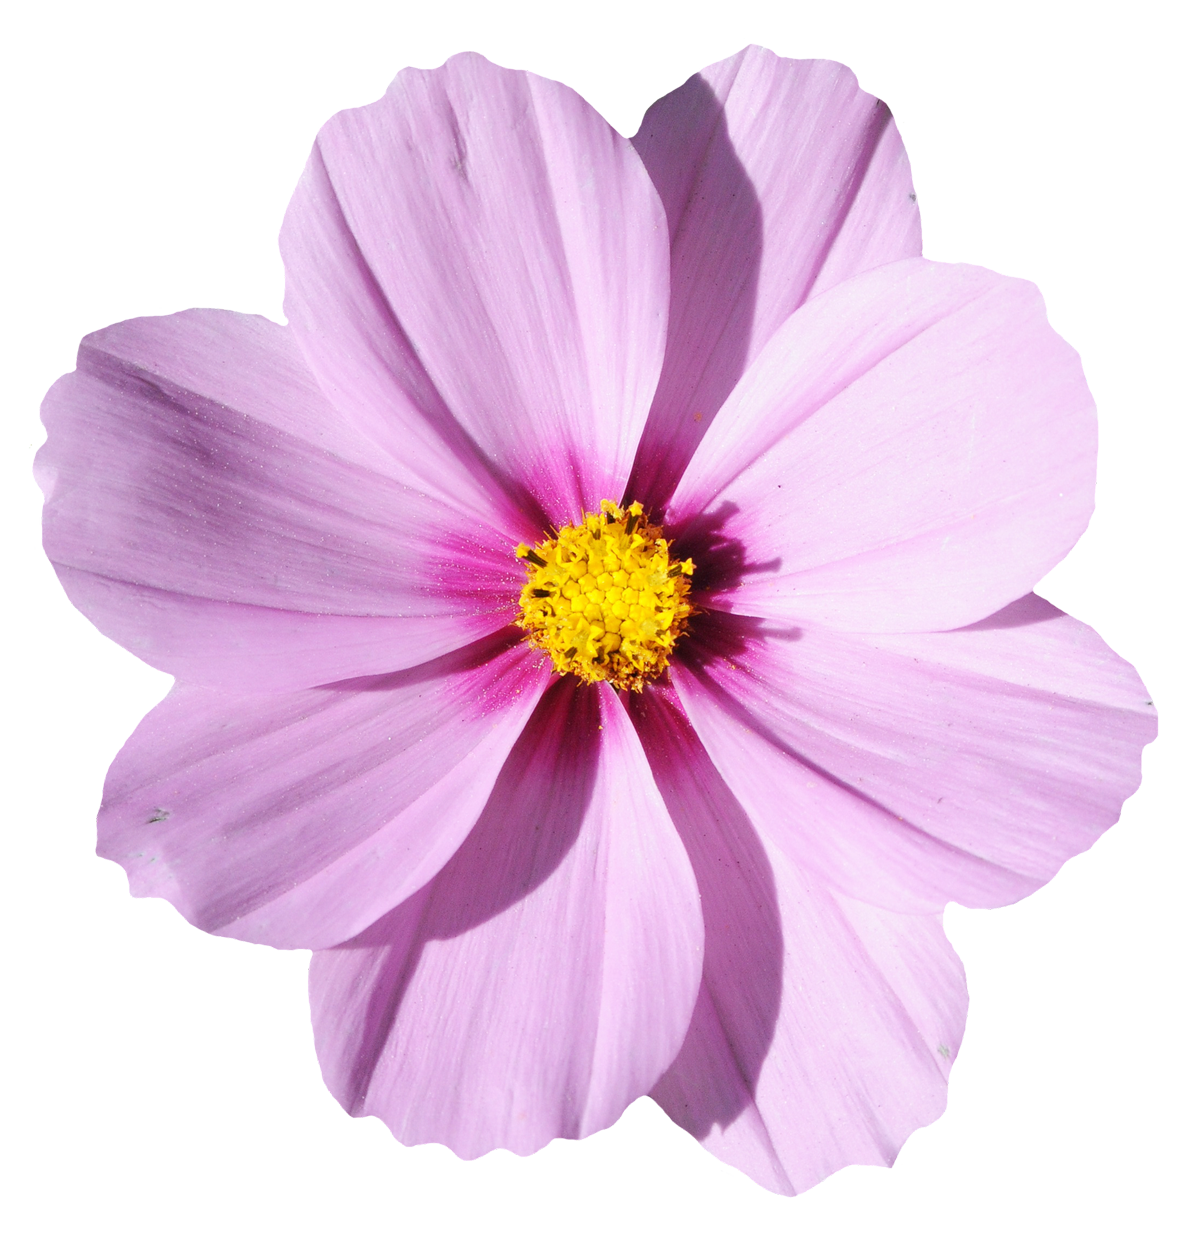 Flower Transparent Background to Pin on Pinterest PinsDaddy